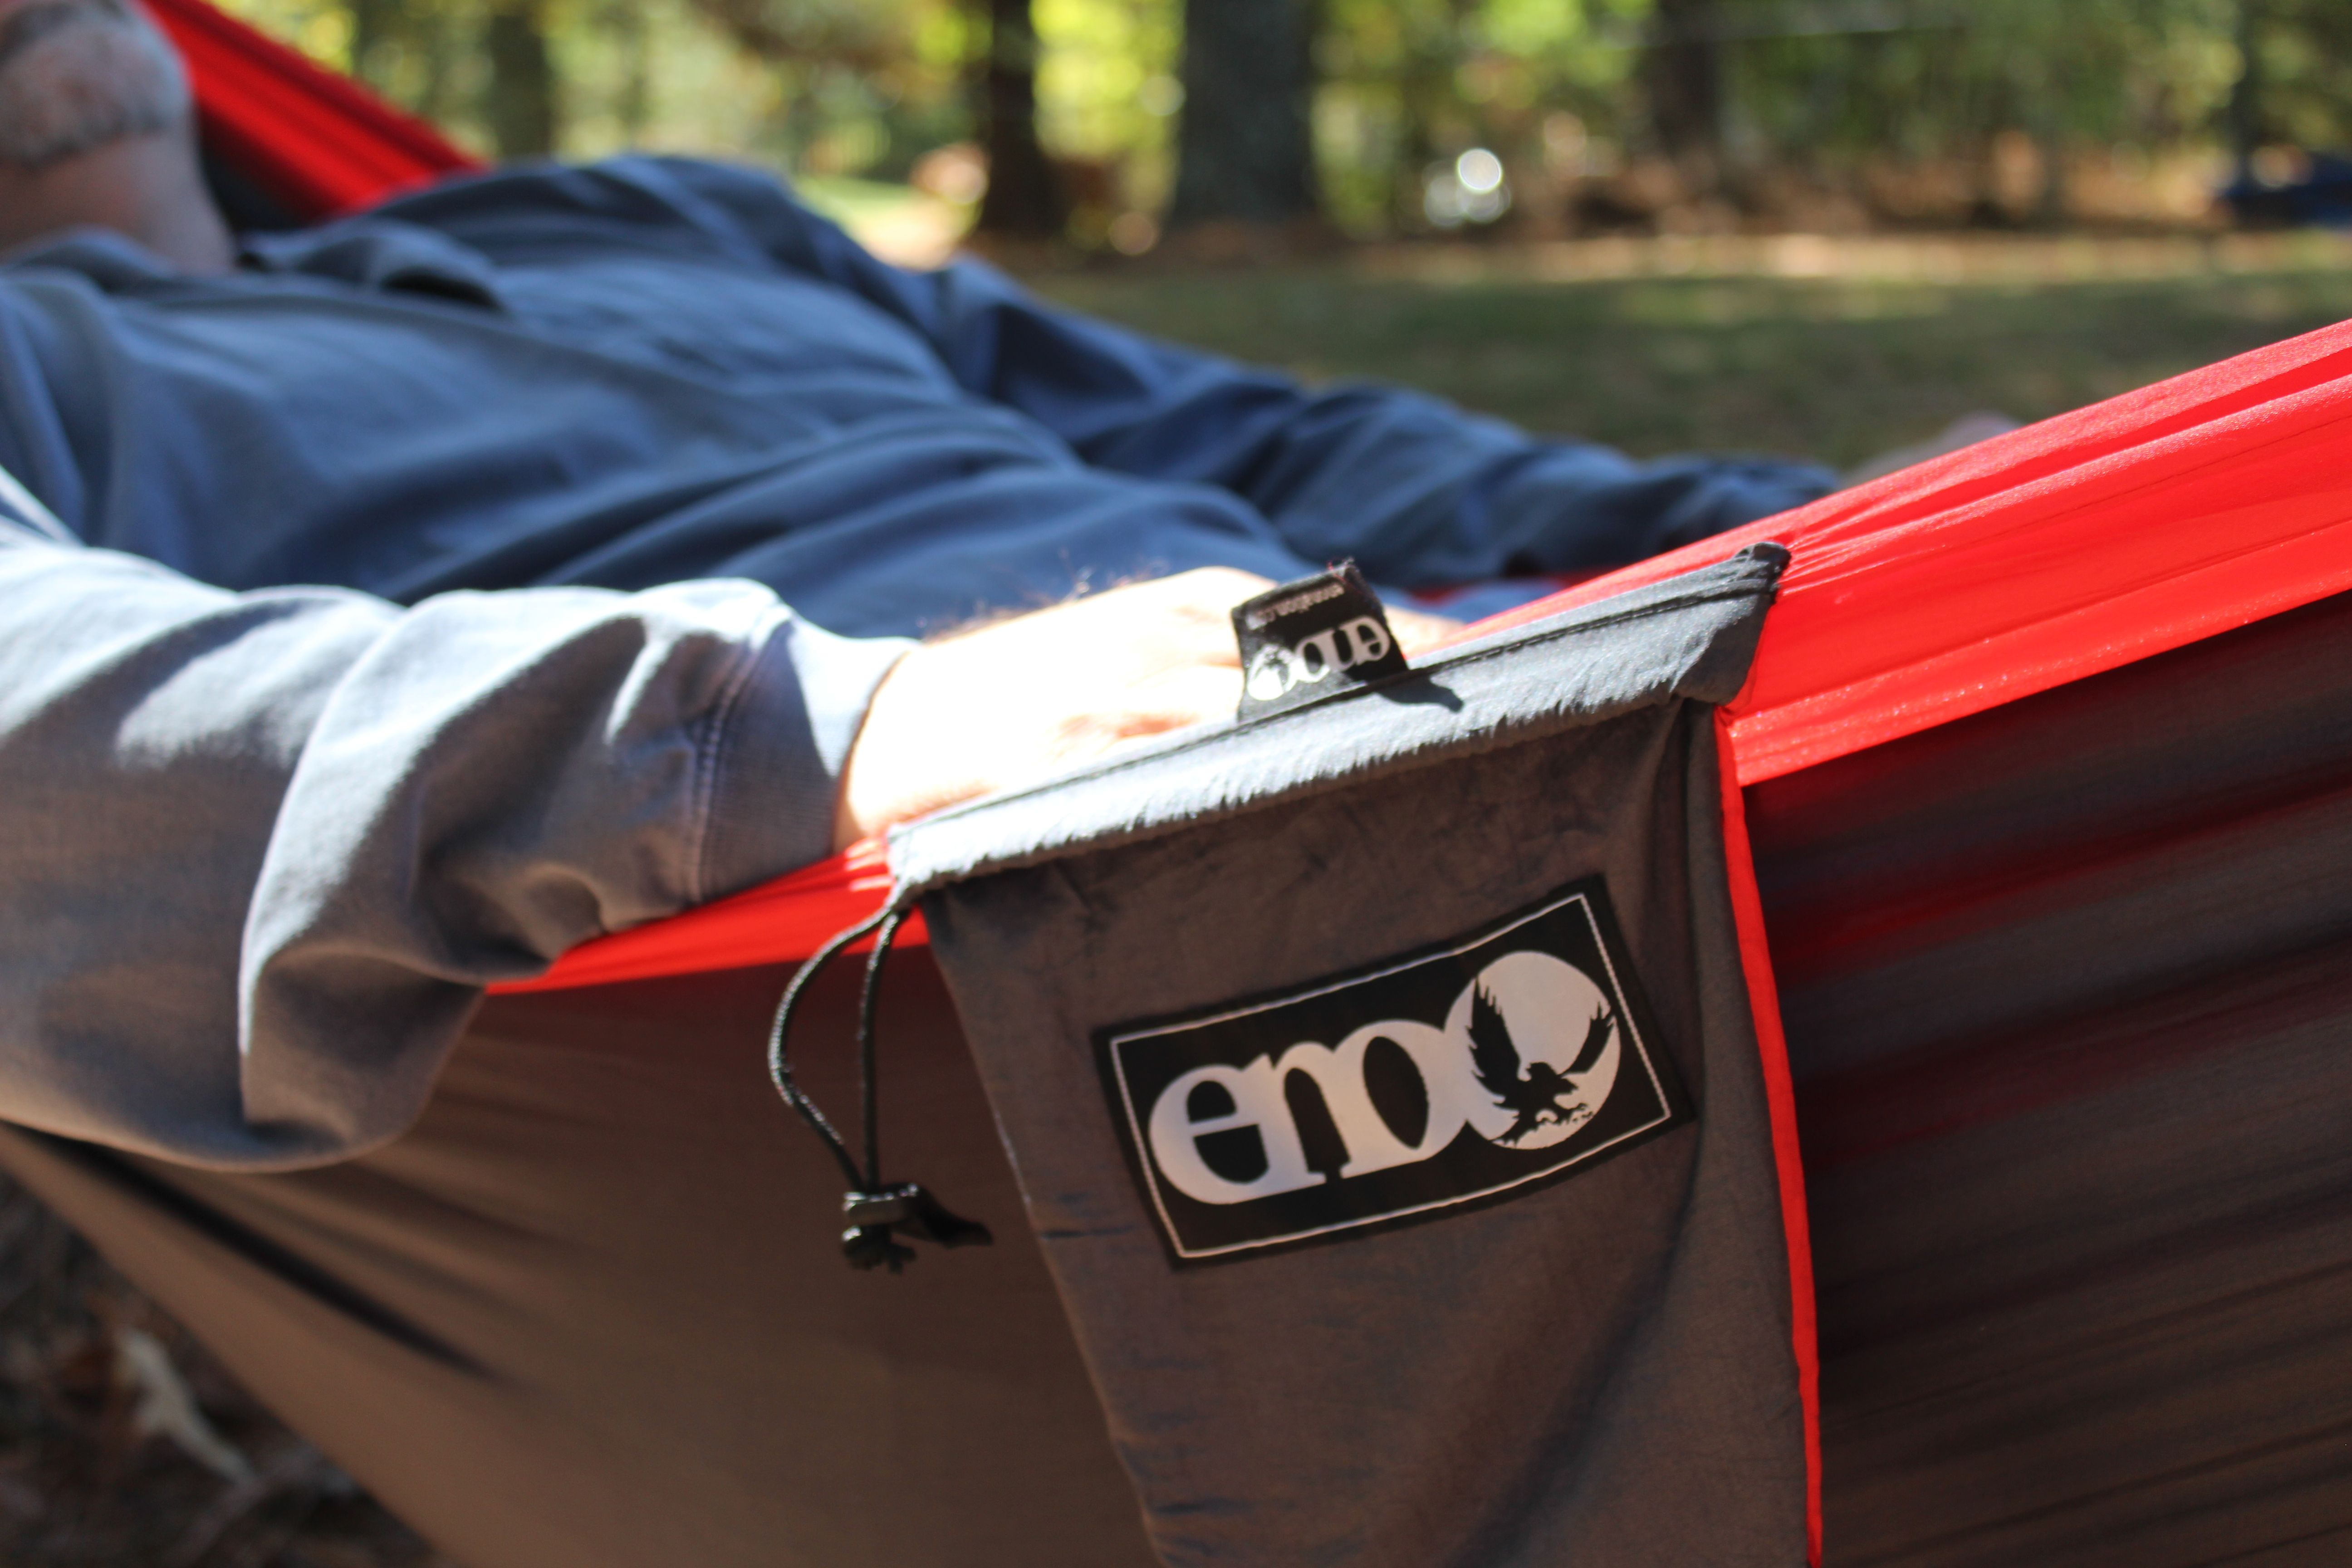 with images website design site beautiful inspiration eno singlenest best hammocks bed of luxury mosquito official bunk hammock tag net